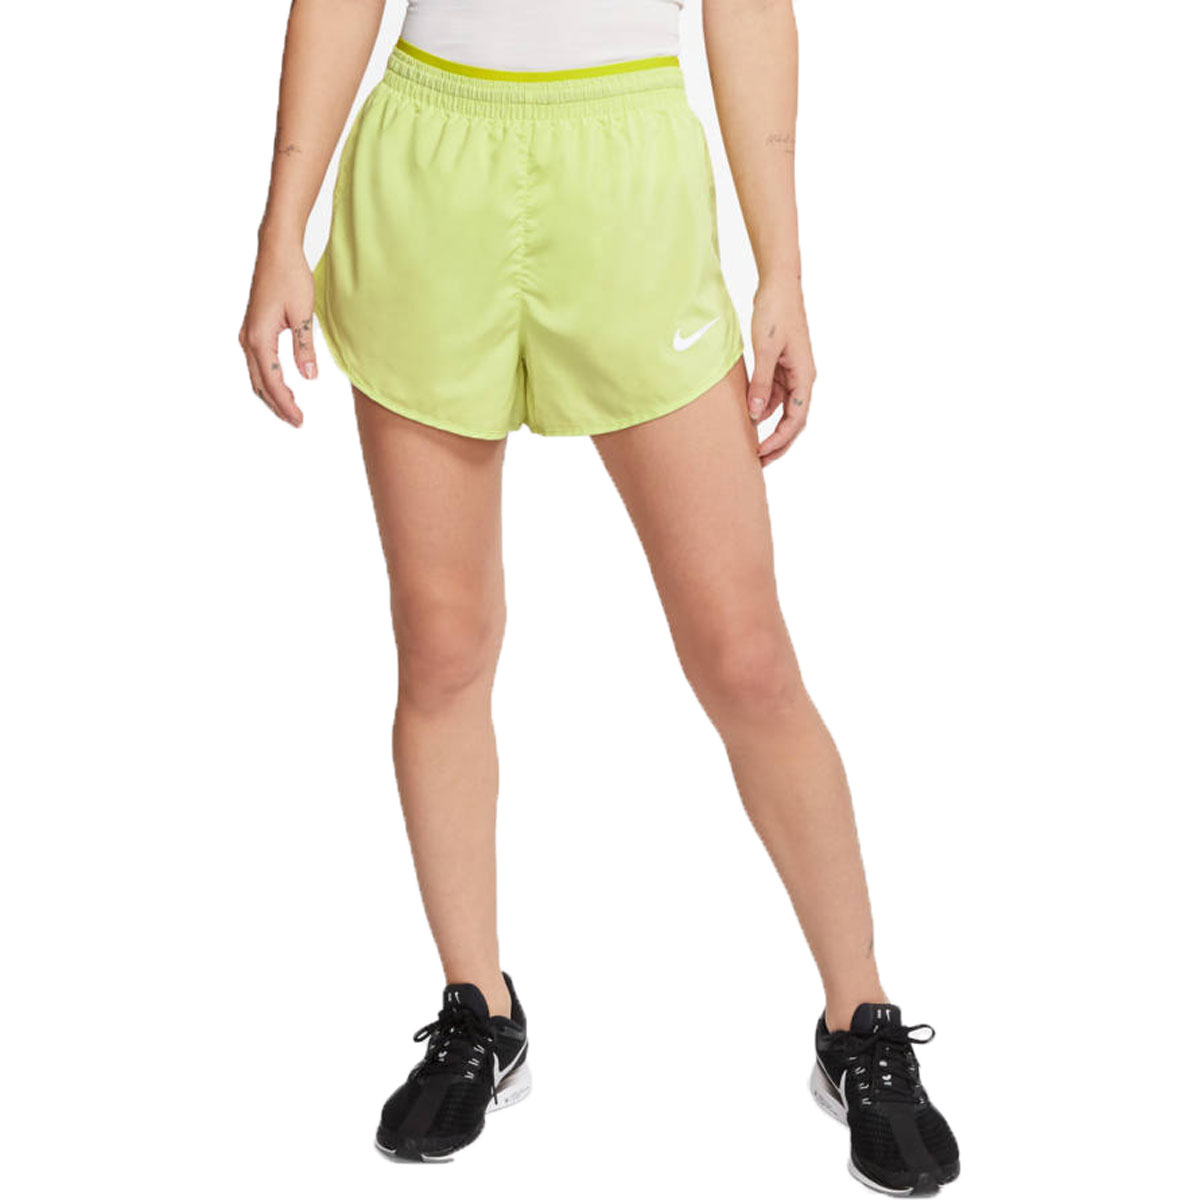 Women's Nike Tempo Luxe 3 Inch Short  - Color: Limelight - Size: S, Limelight, large, image 1